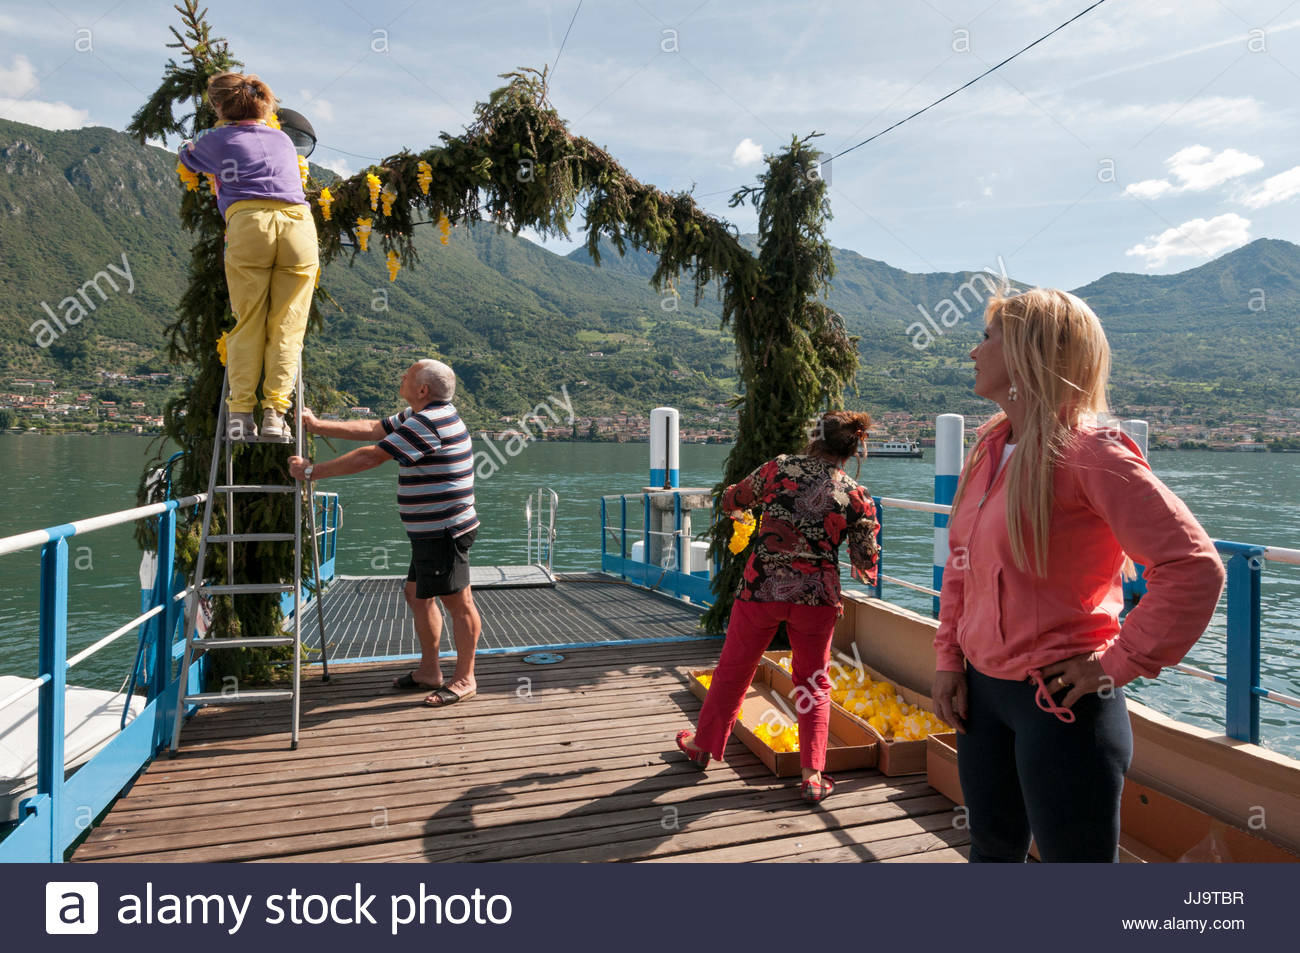 Decorating village with pine branches and paper flowers festoons, Festa di Santa Croce, Carzano, Lake Iseo, Italy - Stock Image